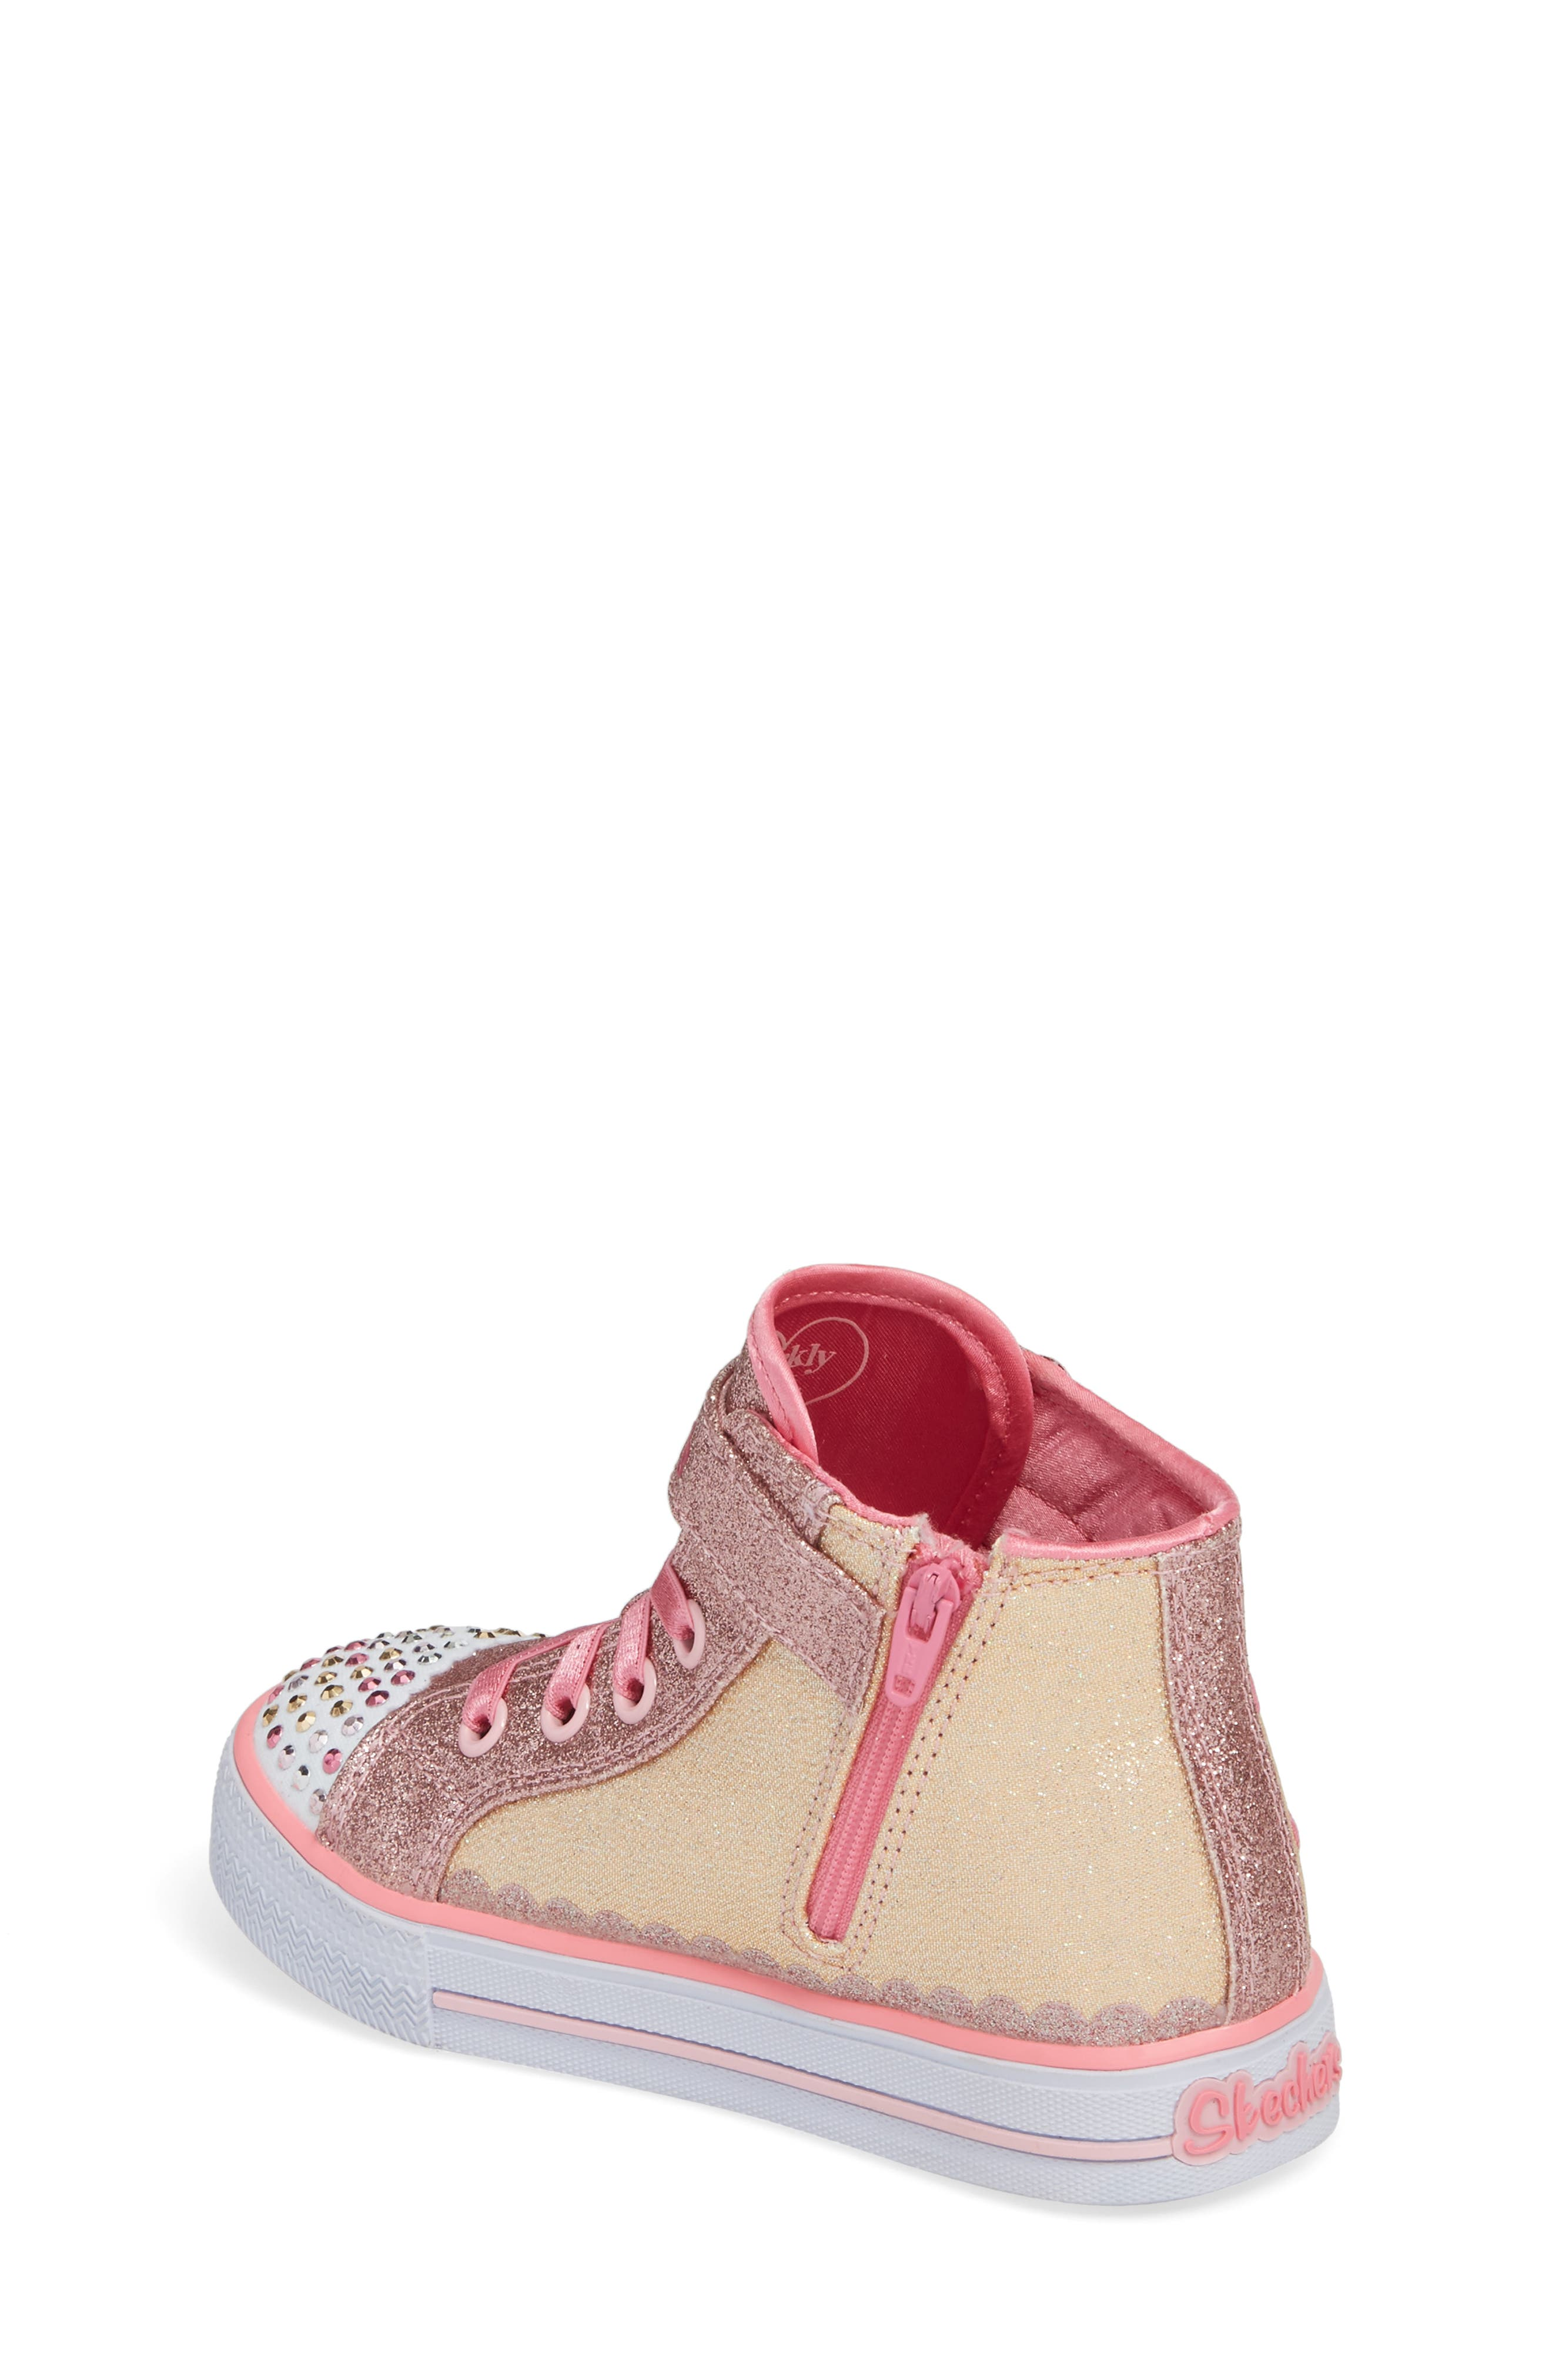 Twinkle Toes - Shuffles High Top Sneaker,                             Alternate thumbnail 2, color,                             225